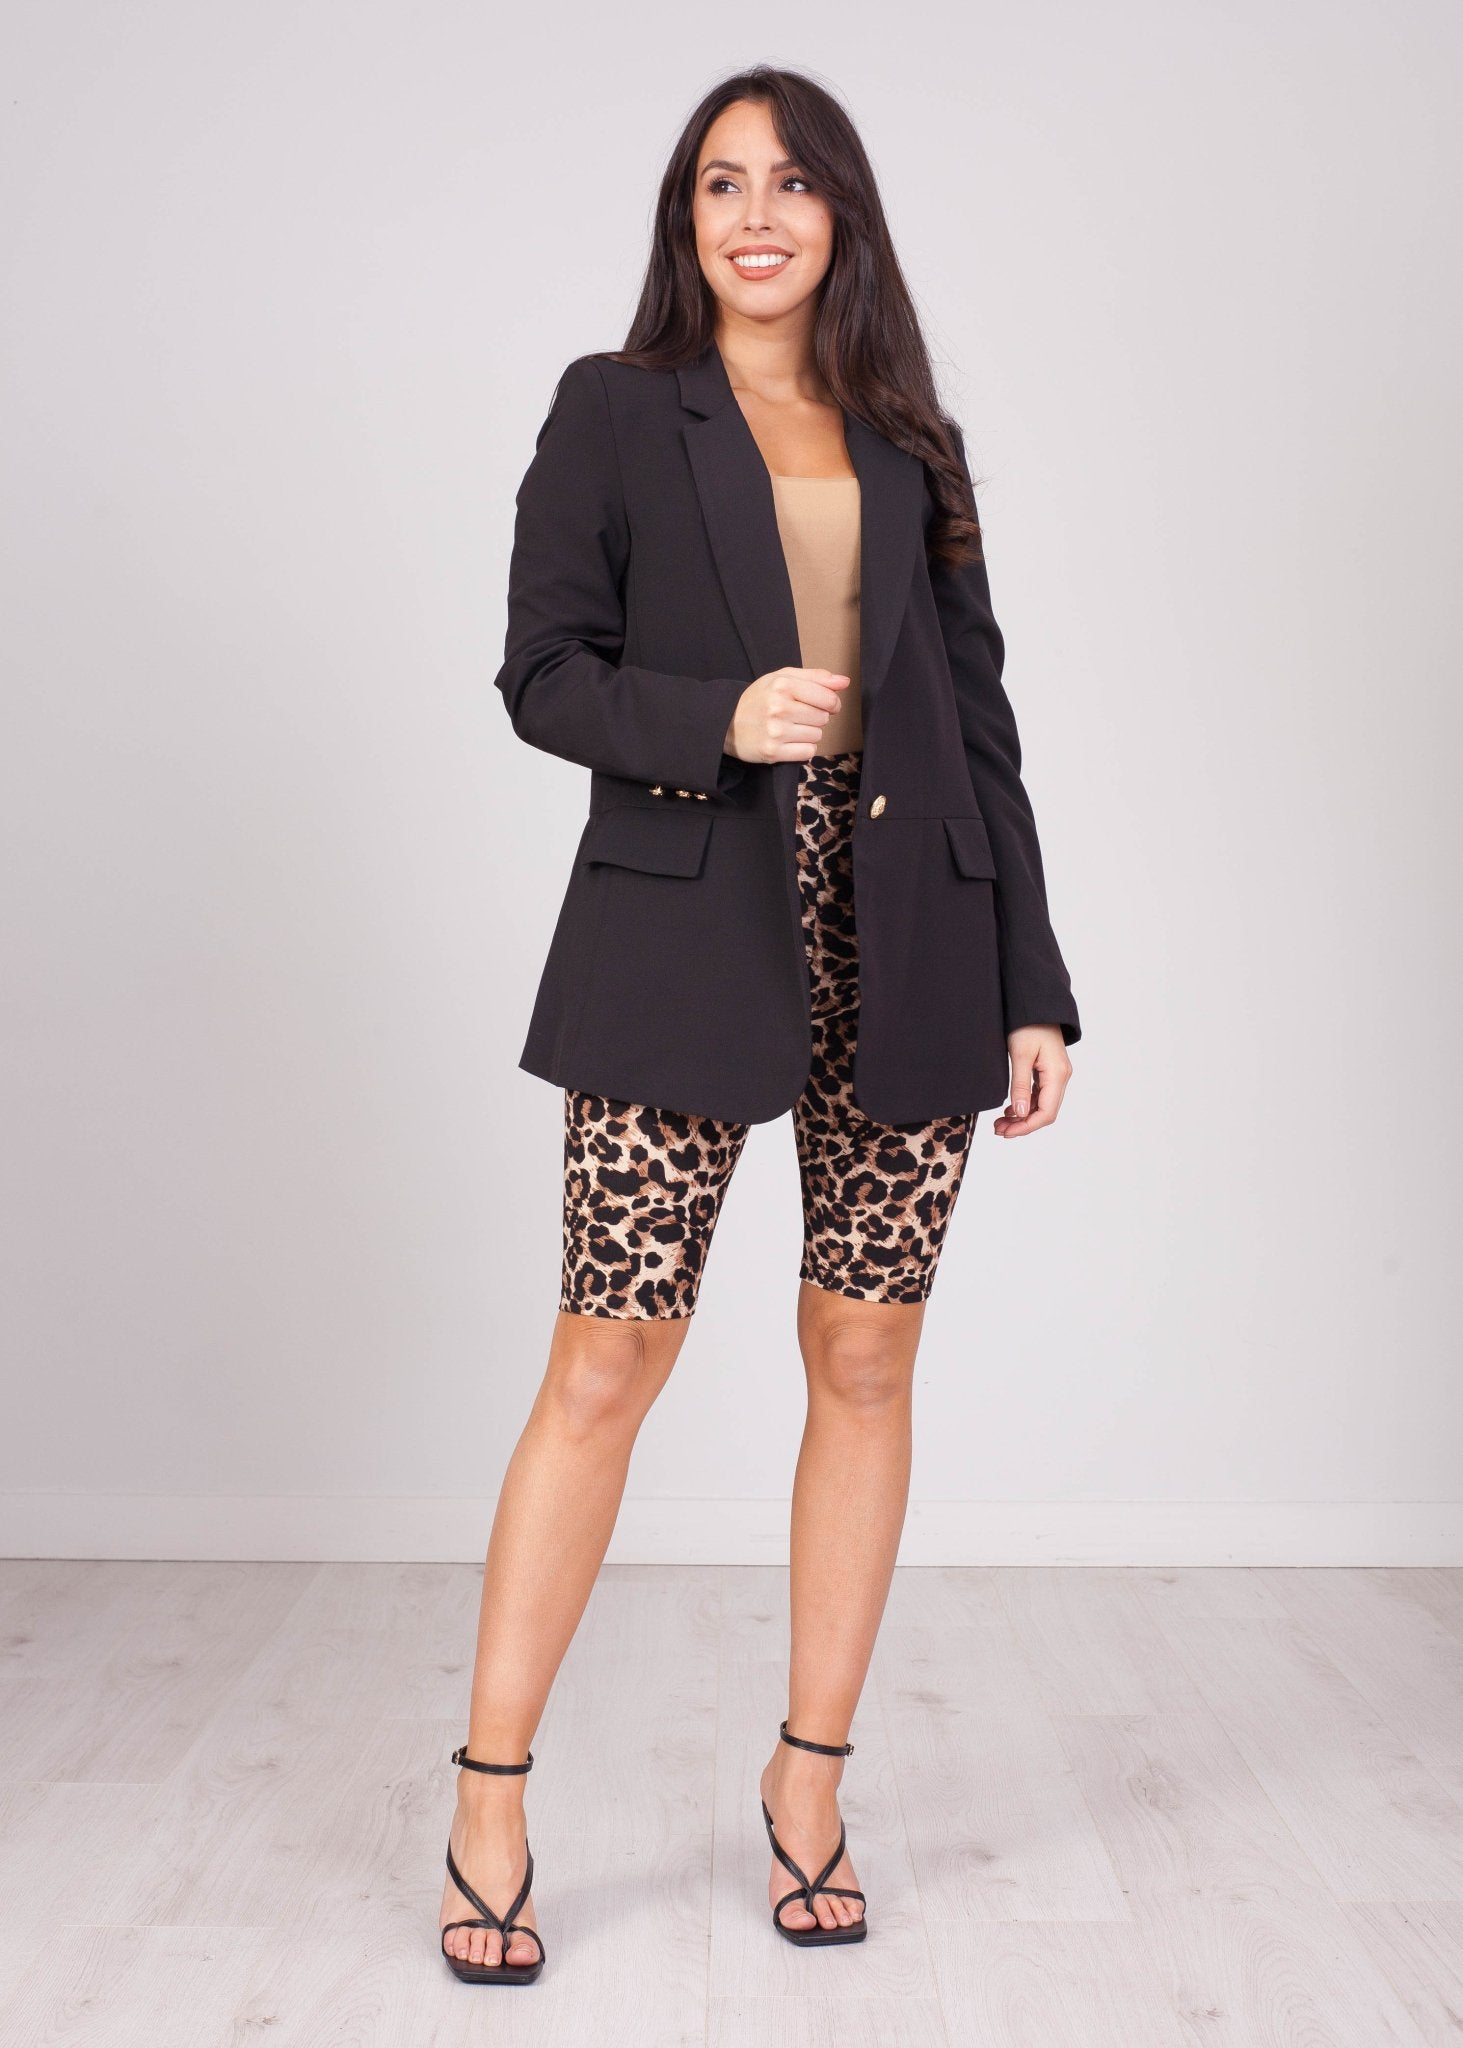 Emilia Leopard Bike Short - The Walk in Wardrobe